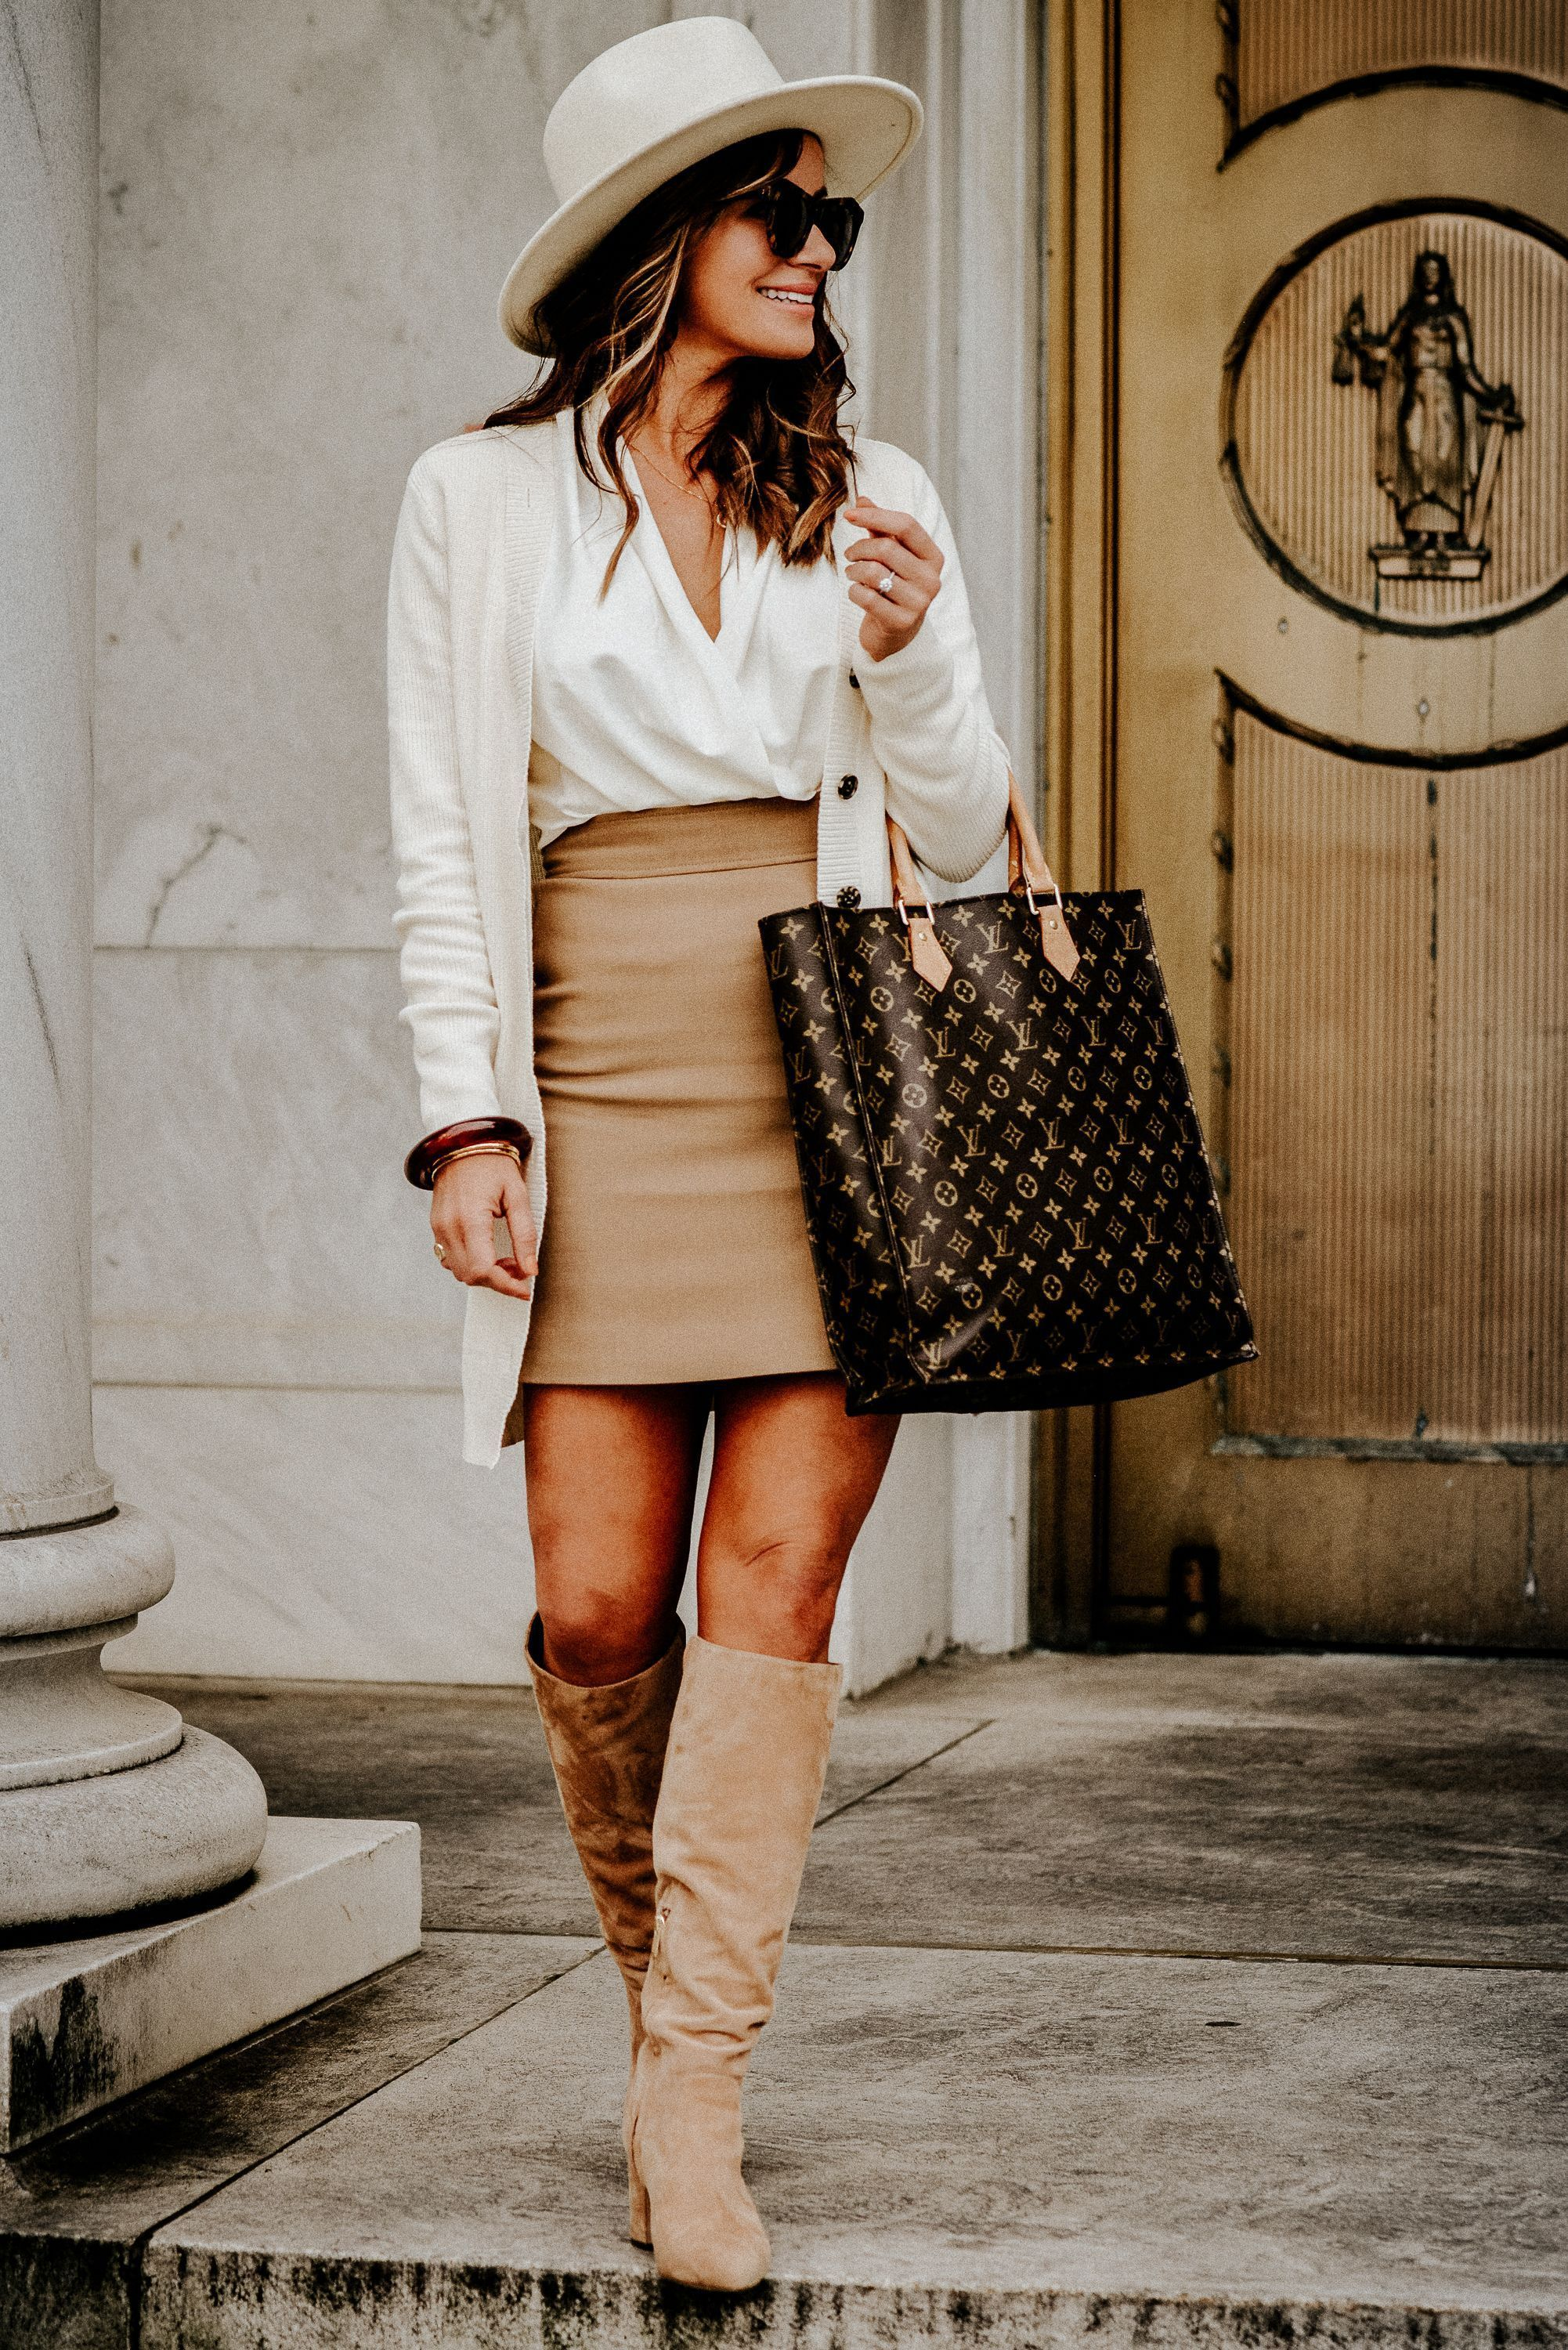 e0c543548d2 Cool 42 The Latest Women Fashion 2019 the Current Trend https   101outfit.